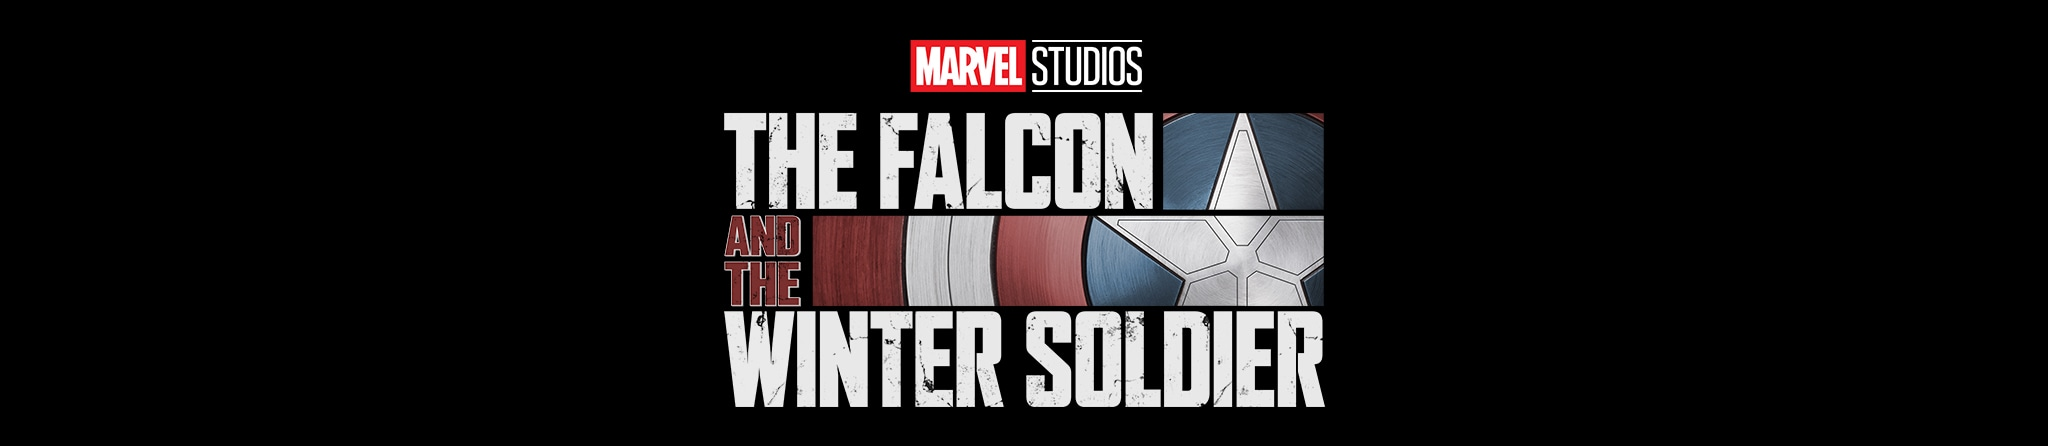 Marvel Studios | The Falcon and the Winter Soldier